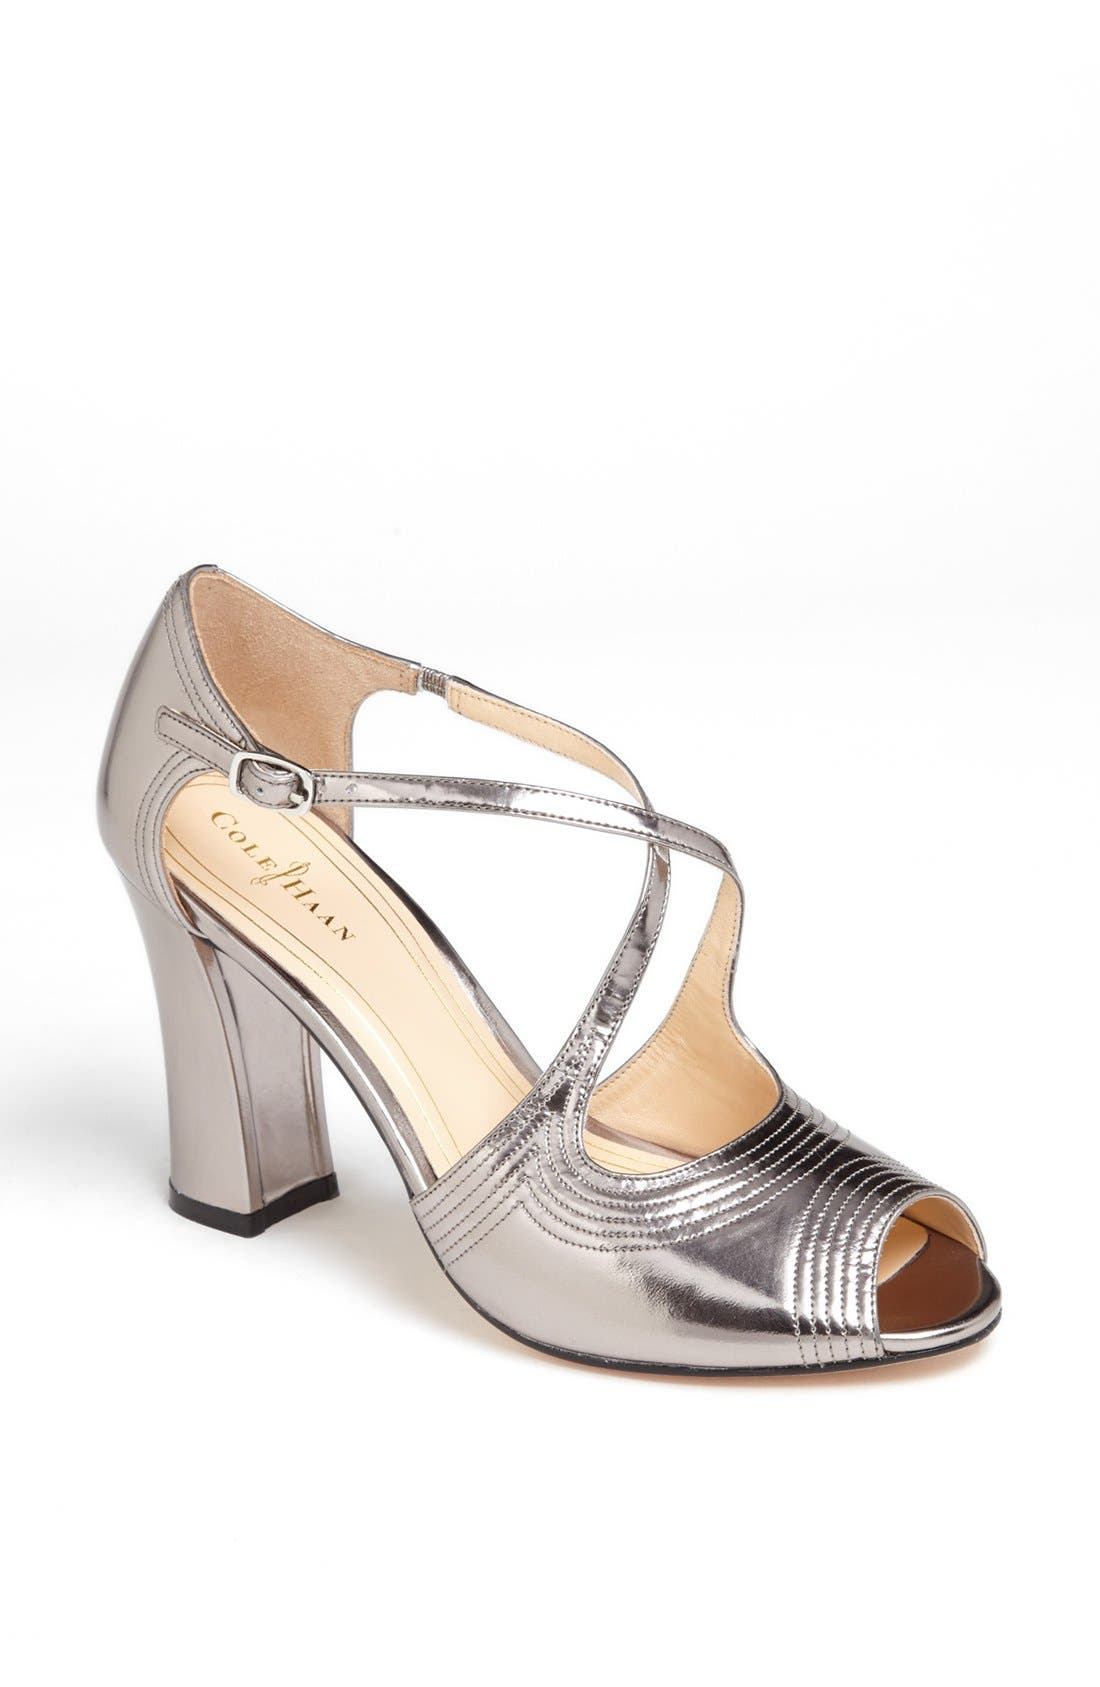 Main Image - Cole Haan 'Jovie' Mirrored Sandal